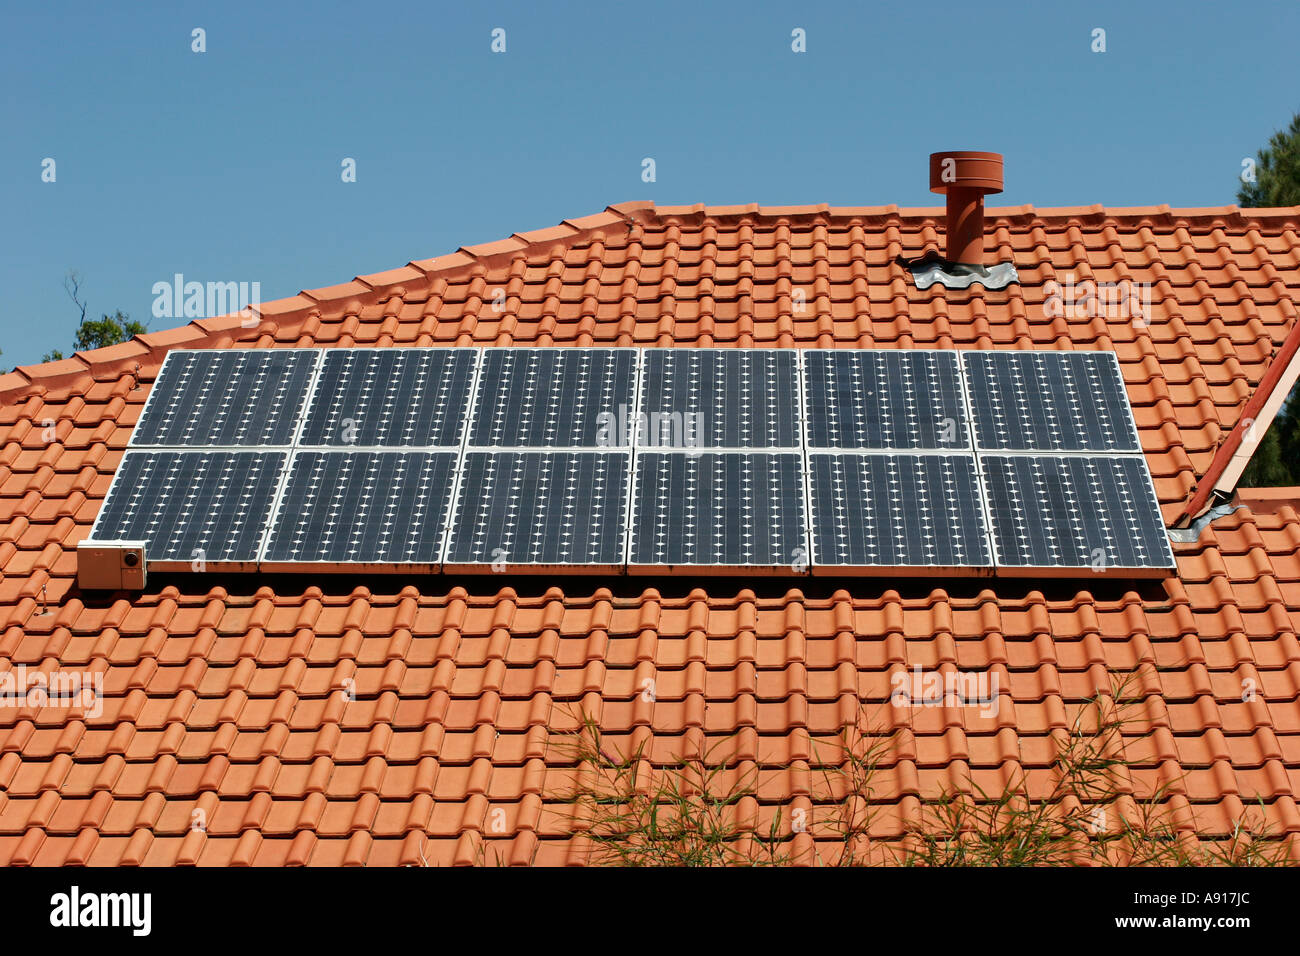 Photovoltaic solar panels on a house roof in Sydney New South Wales Australia. - Stock Image